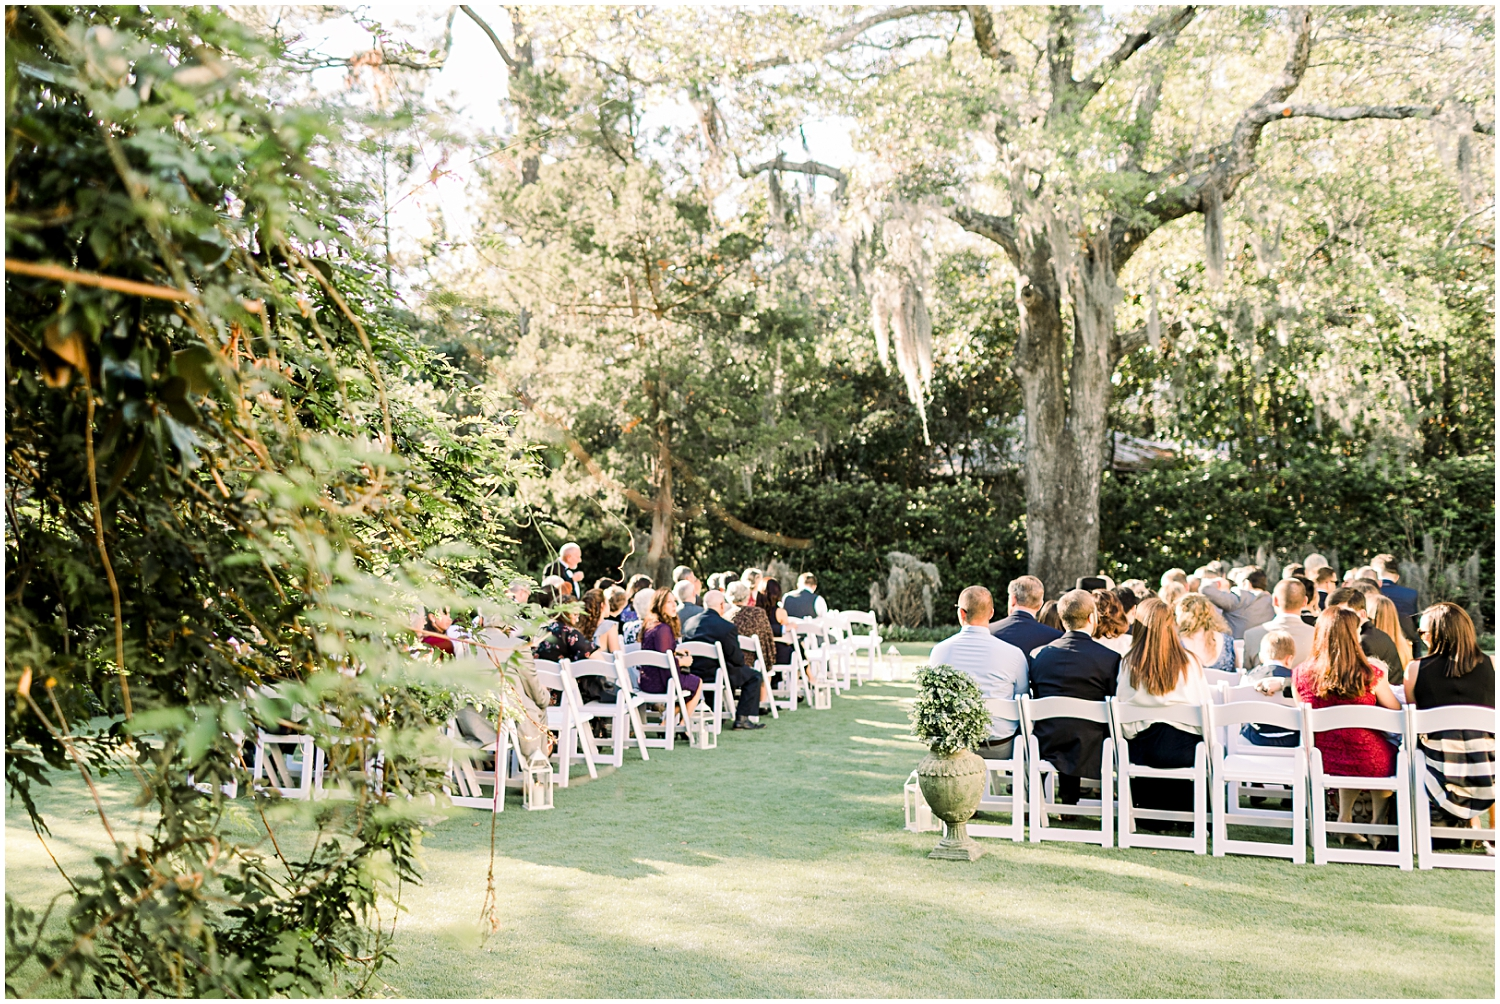 Wrightsville Manor Wedding Venue, Downtown Wilmington NC Wedding_Erin L. Taylor Photography_0006.jpg